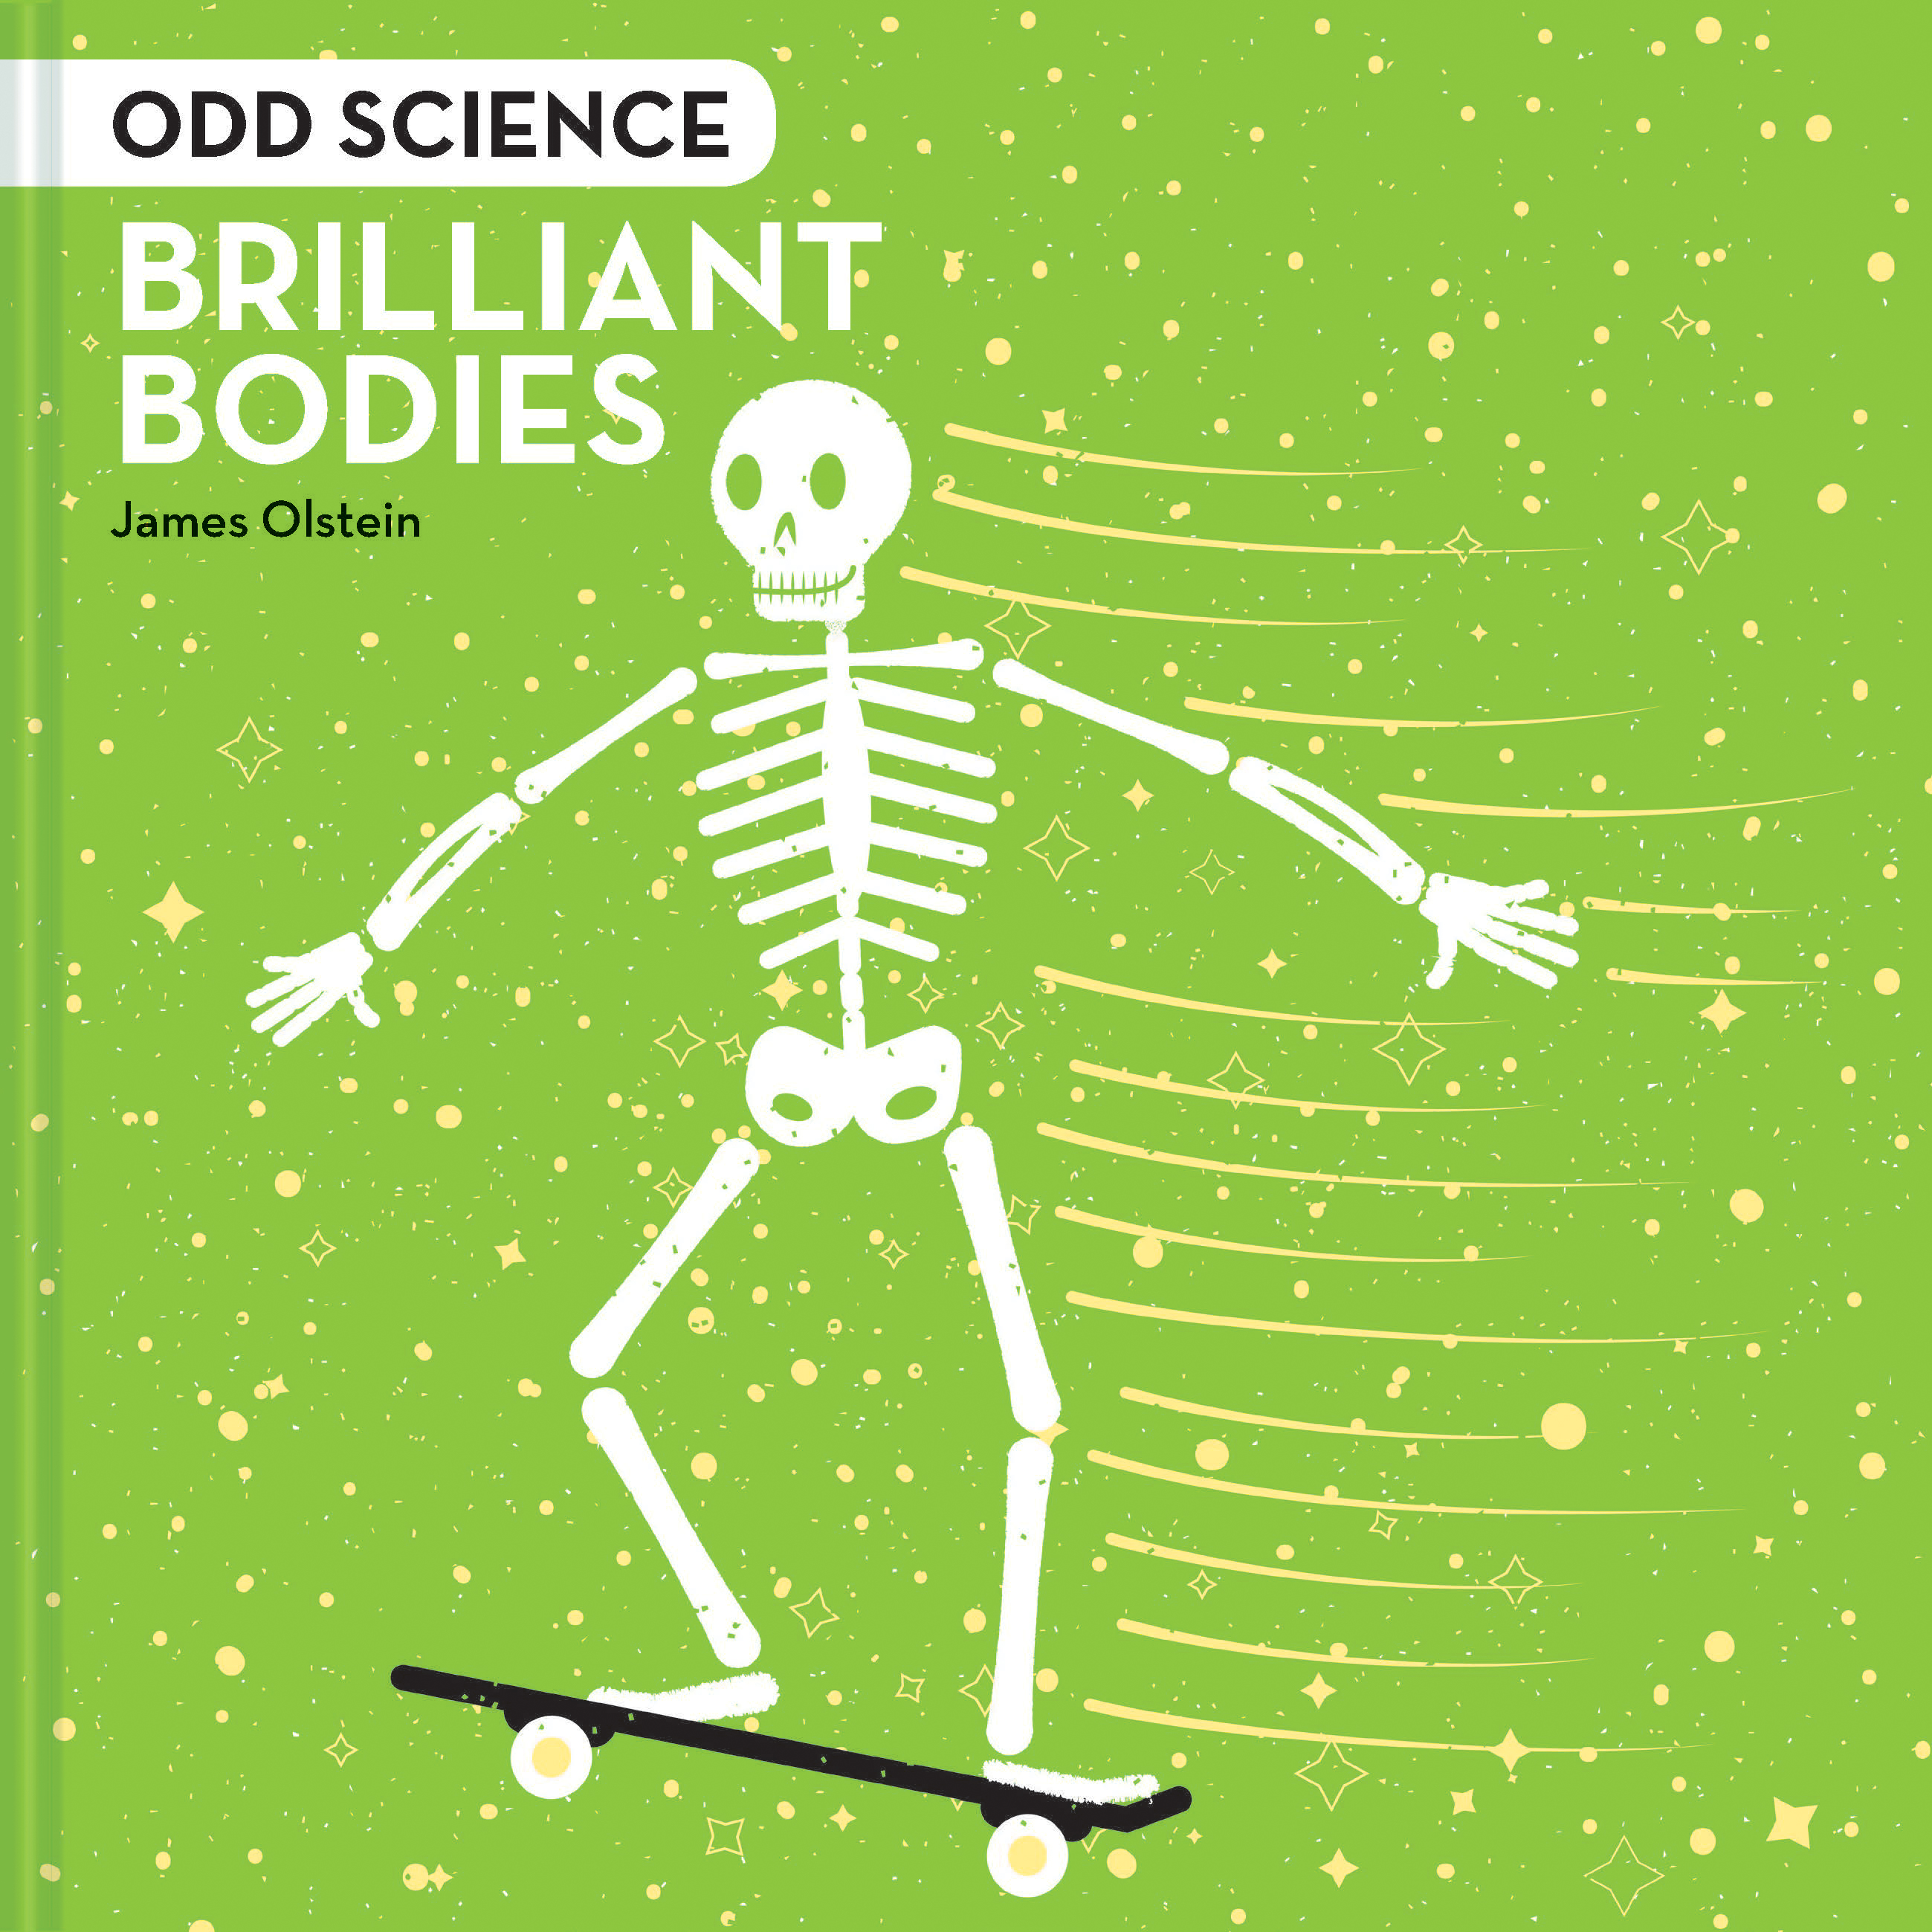 Odd Science – Brilliant Bodies